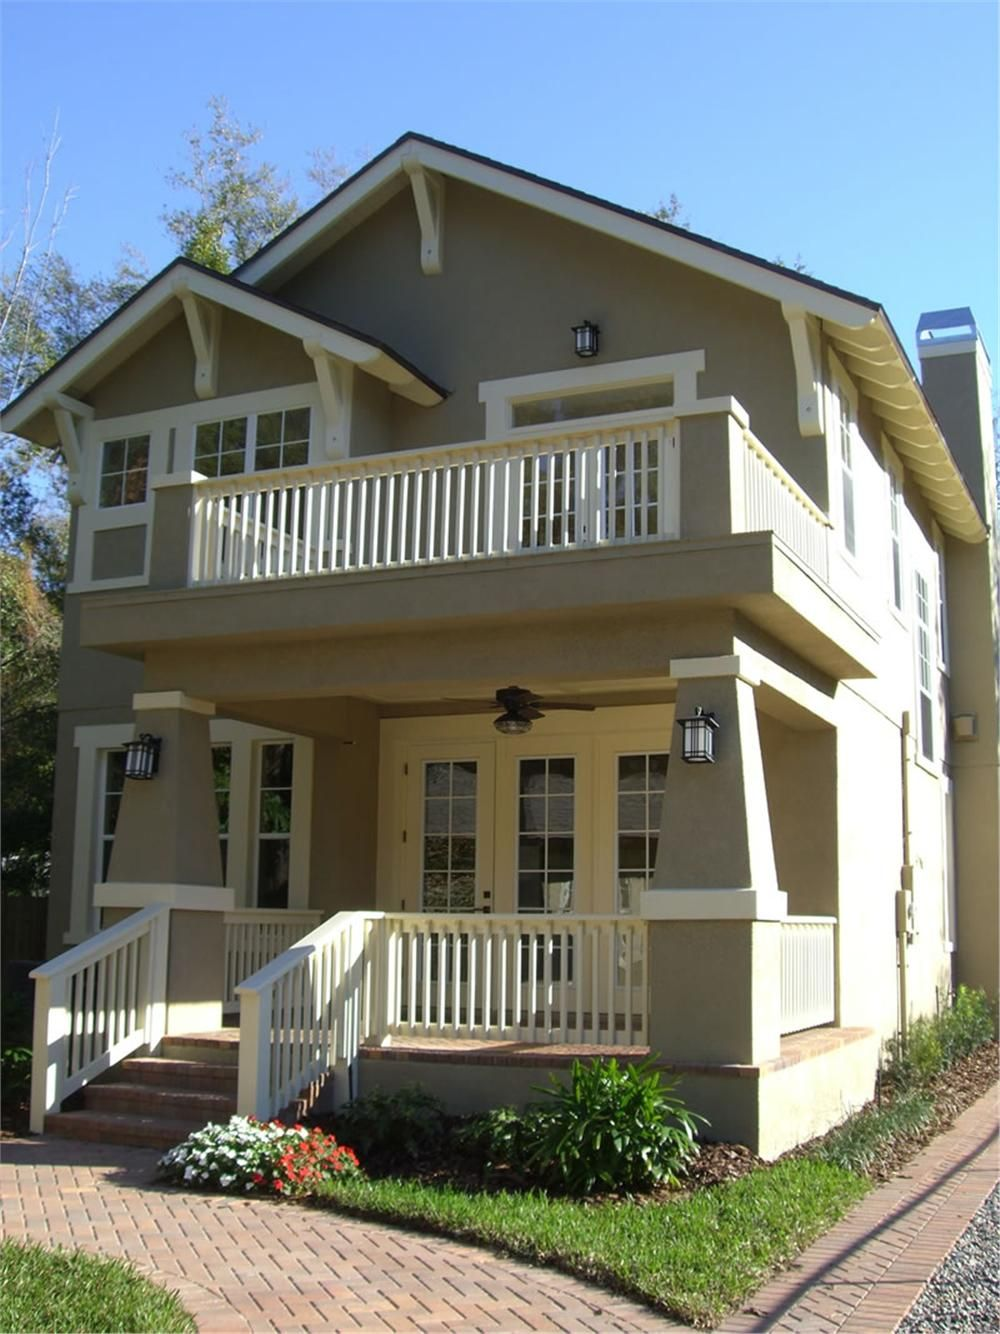 Great 2 Story Bungalow Home - a2d849a23ea302c8a8120bc823789805  You Should Have_207297.jpg